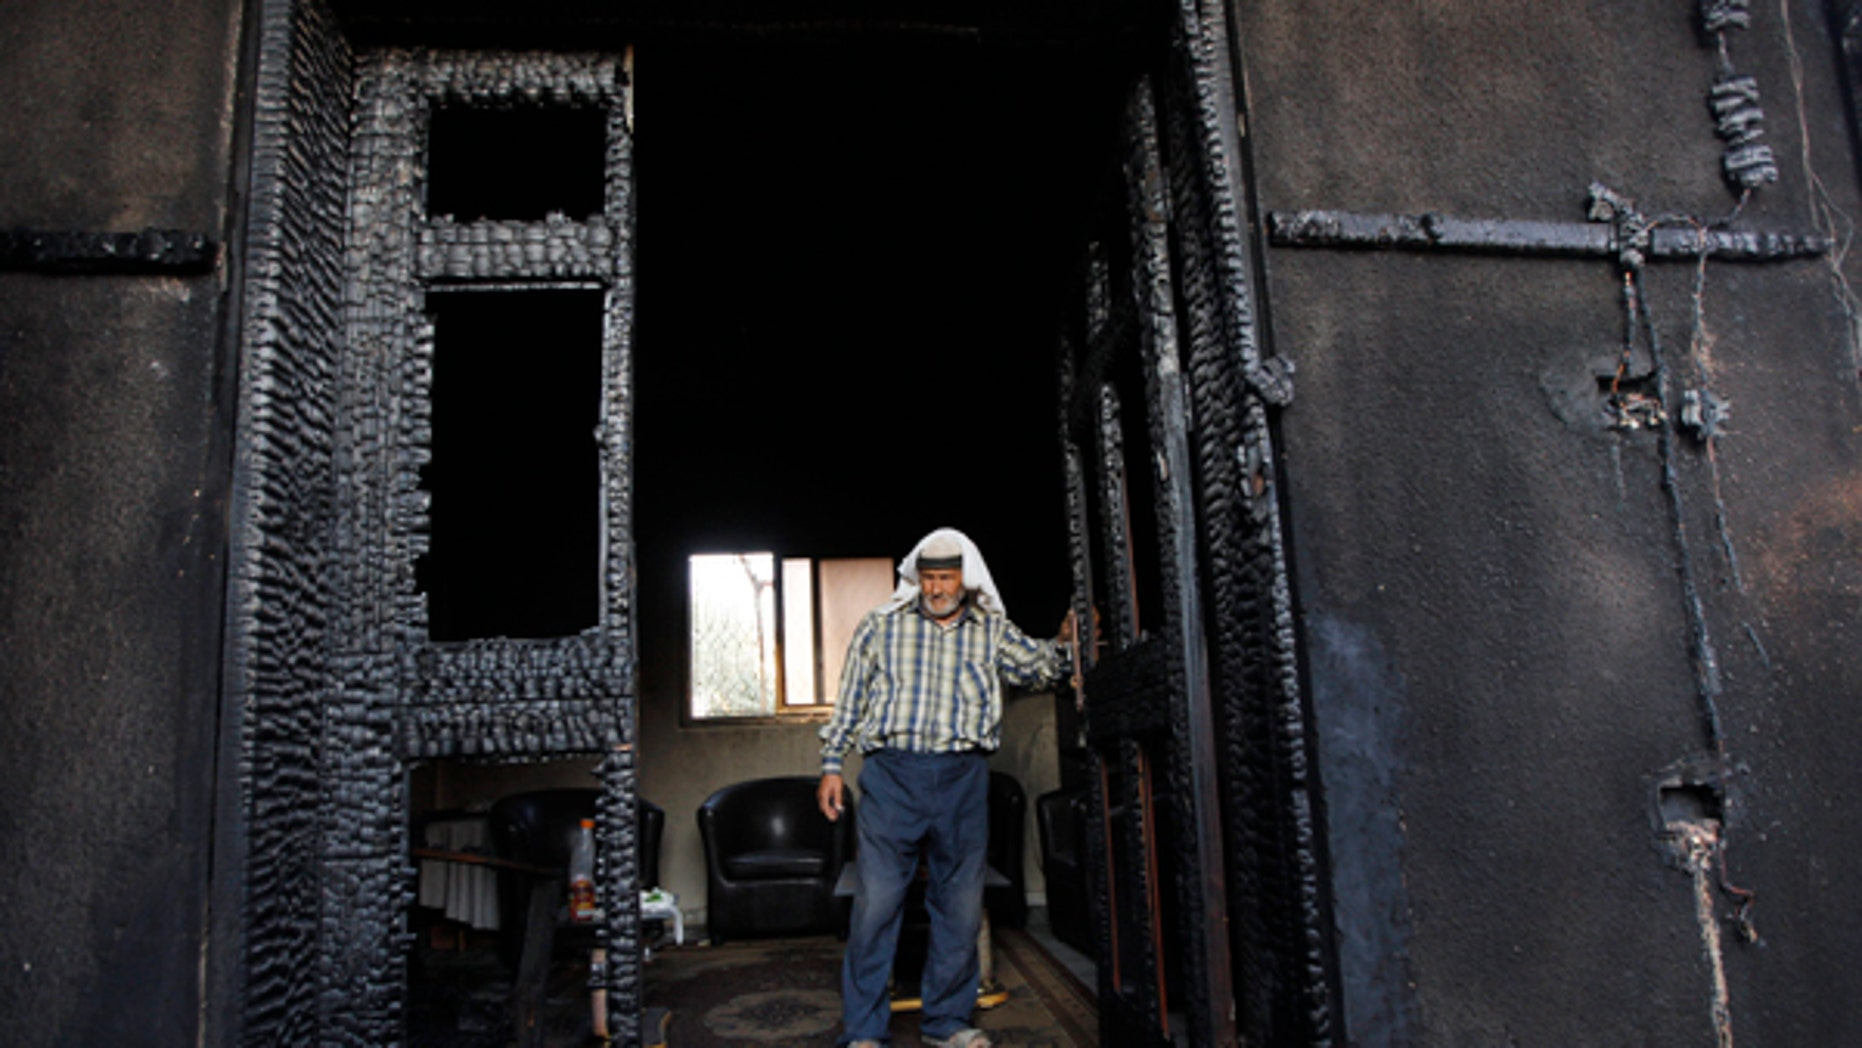 FILE - In this July 31, 2015 file photo, a Palestinian inspects a house after it was torched in a suspected attack by Jewish settlers, killing an 18-month-old Palestinian child and his parents, at Duma village near the West Bank city of Nablus.